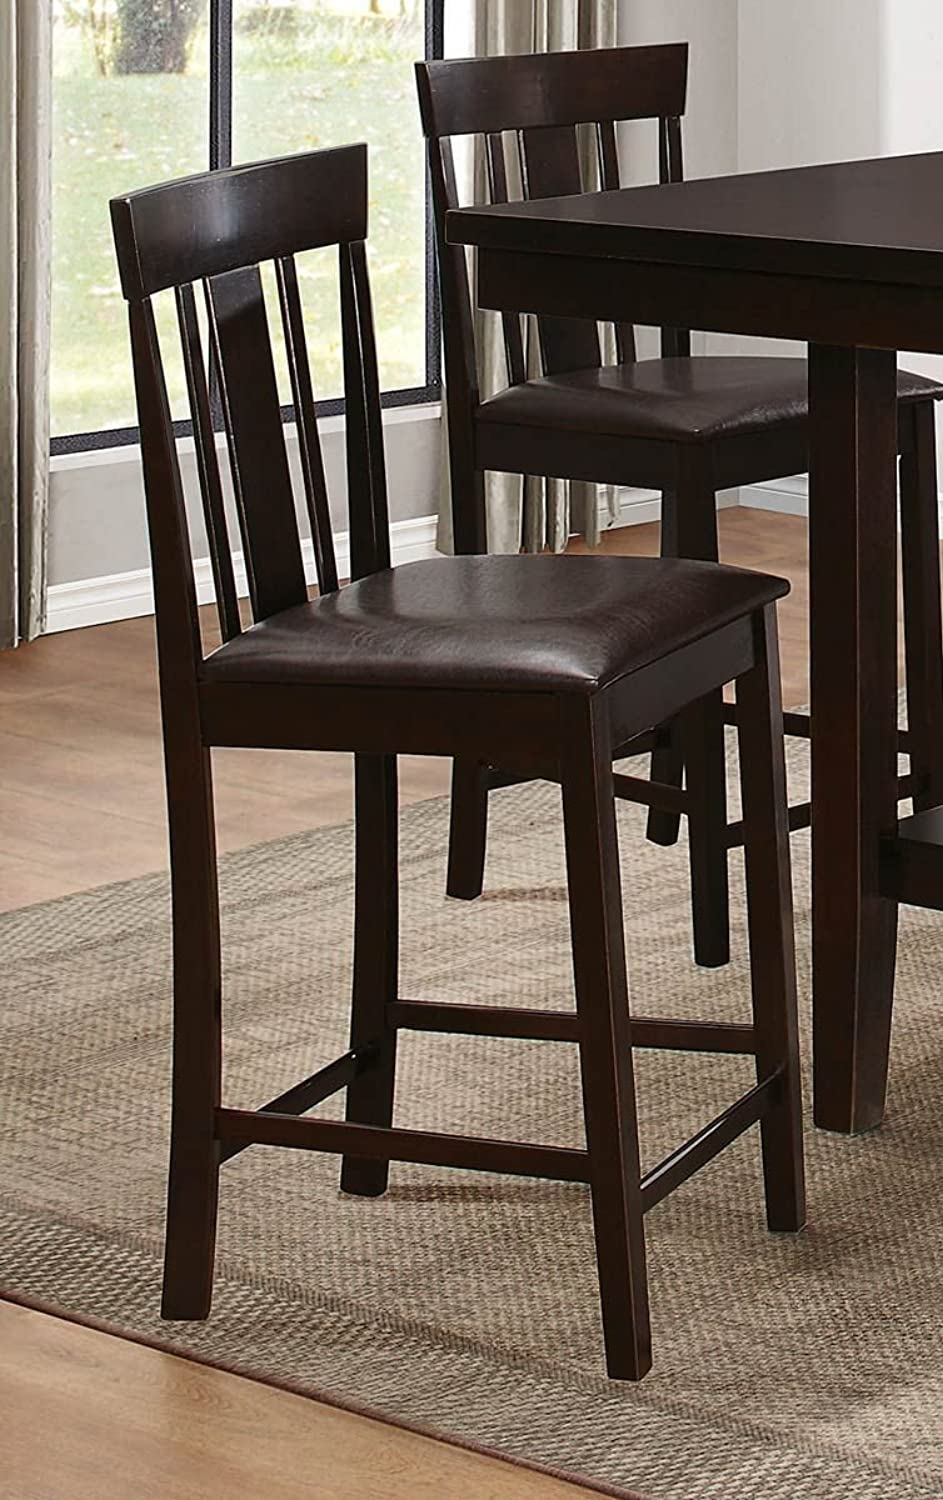 Benzara BM176304 Wooden Counter Height Chair with Padded Seat, Set of Two, Brown